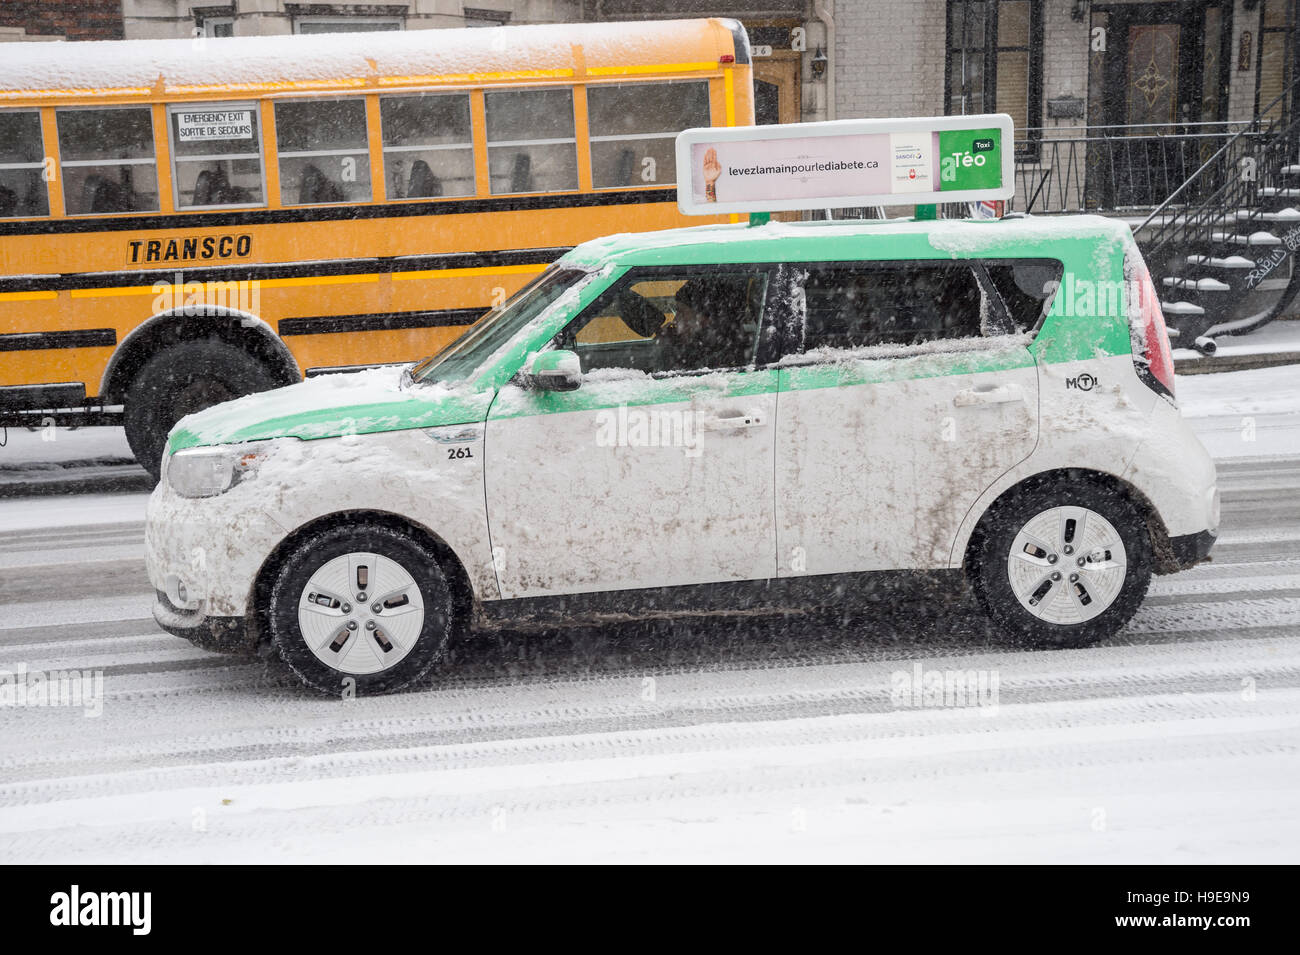 Teo Taxi's electric cabs in Montreal - Stock Image